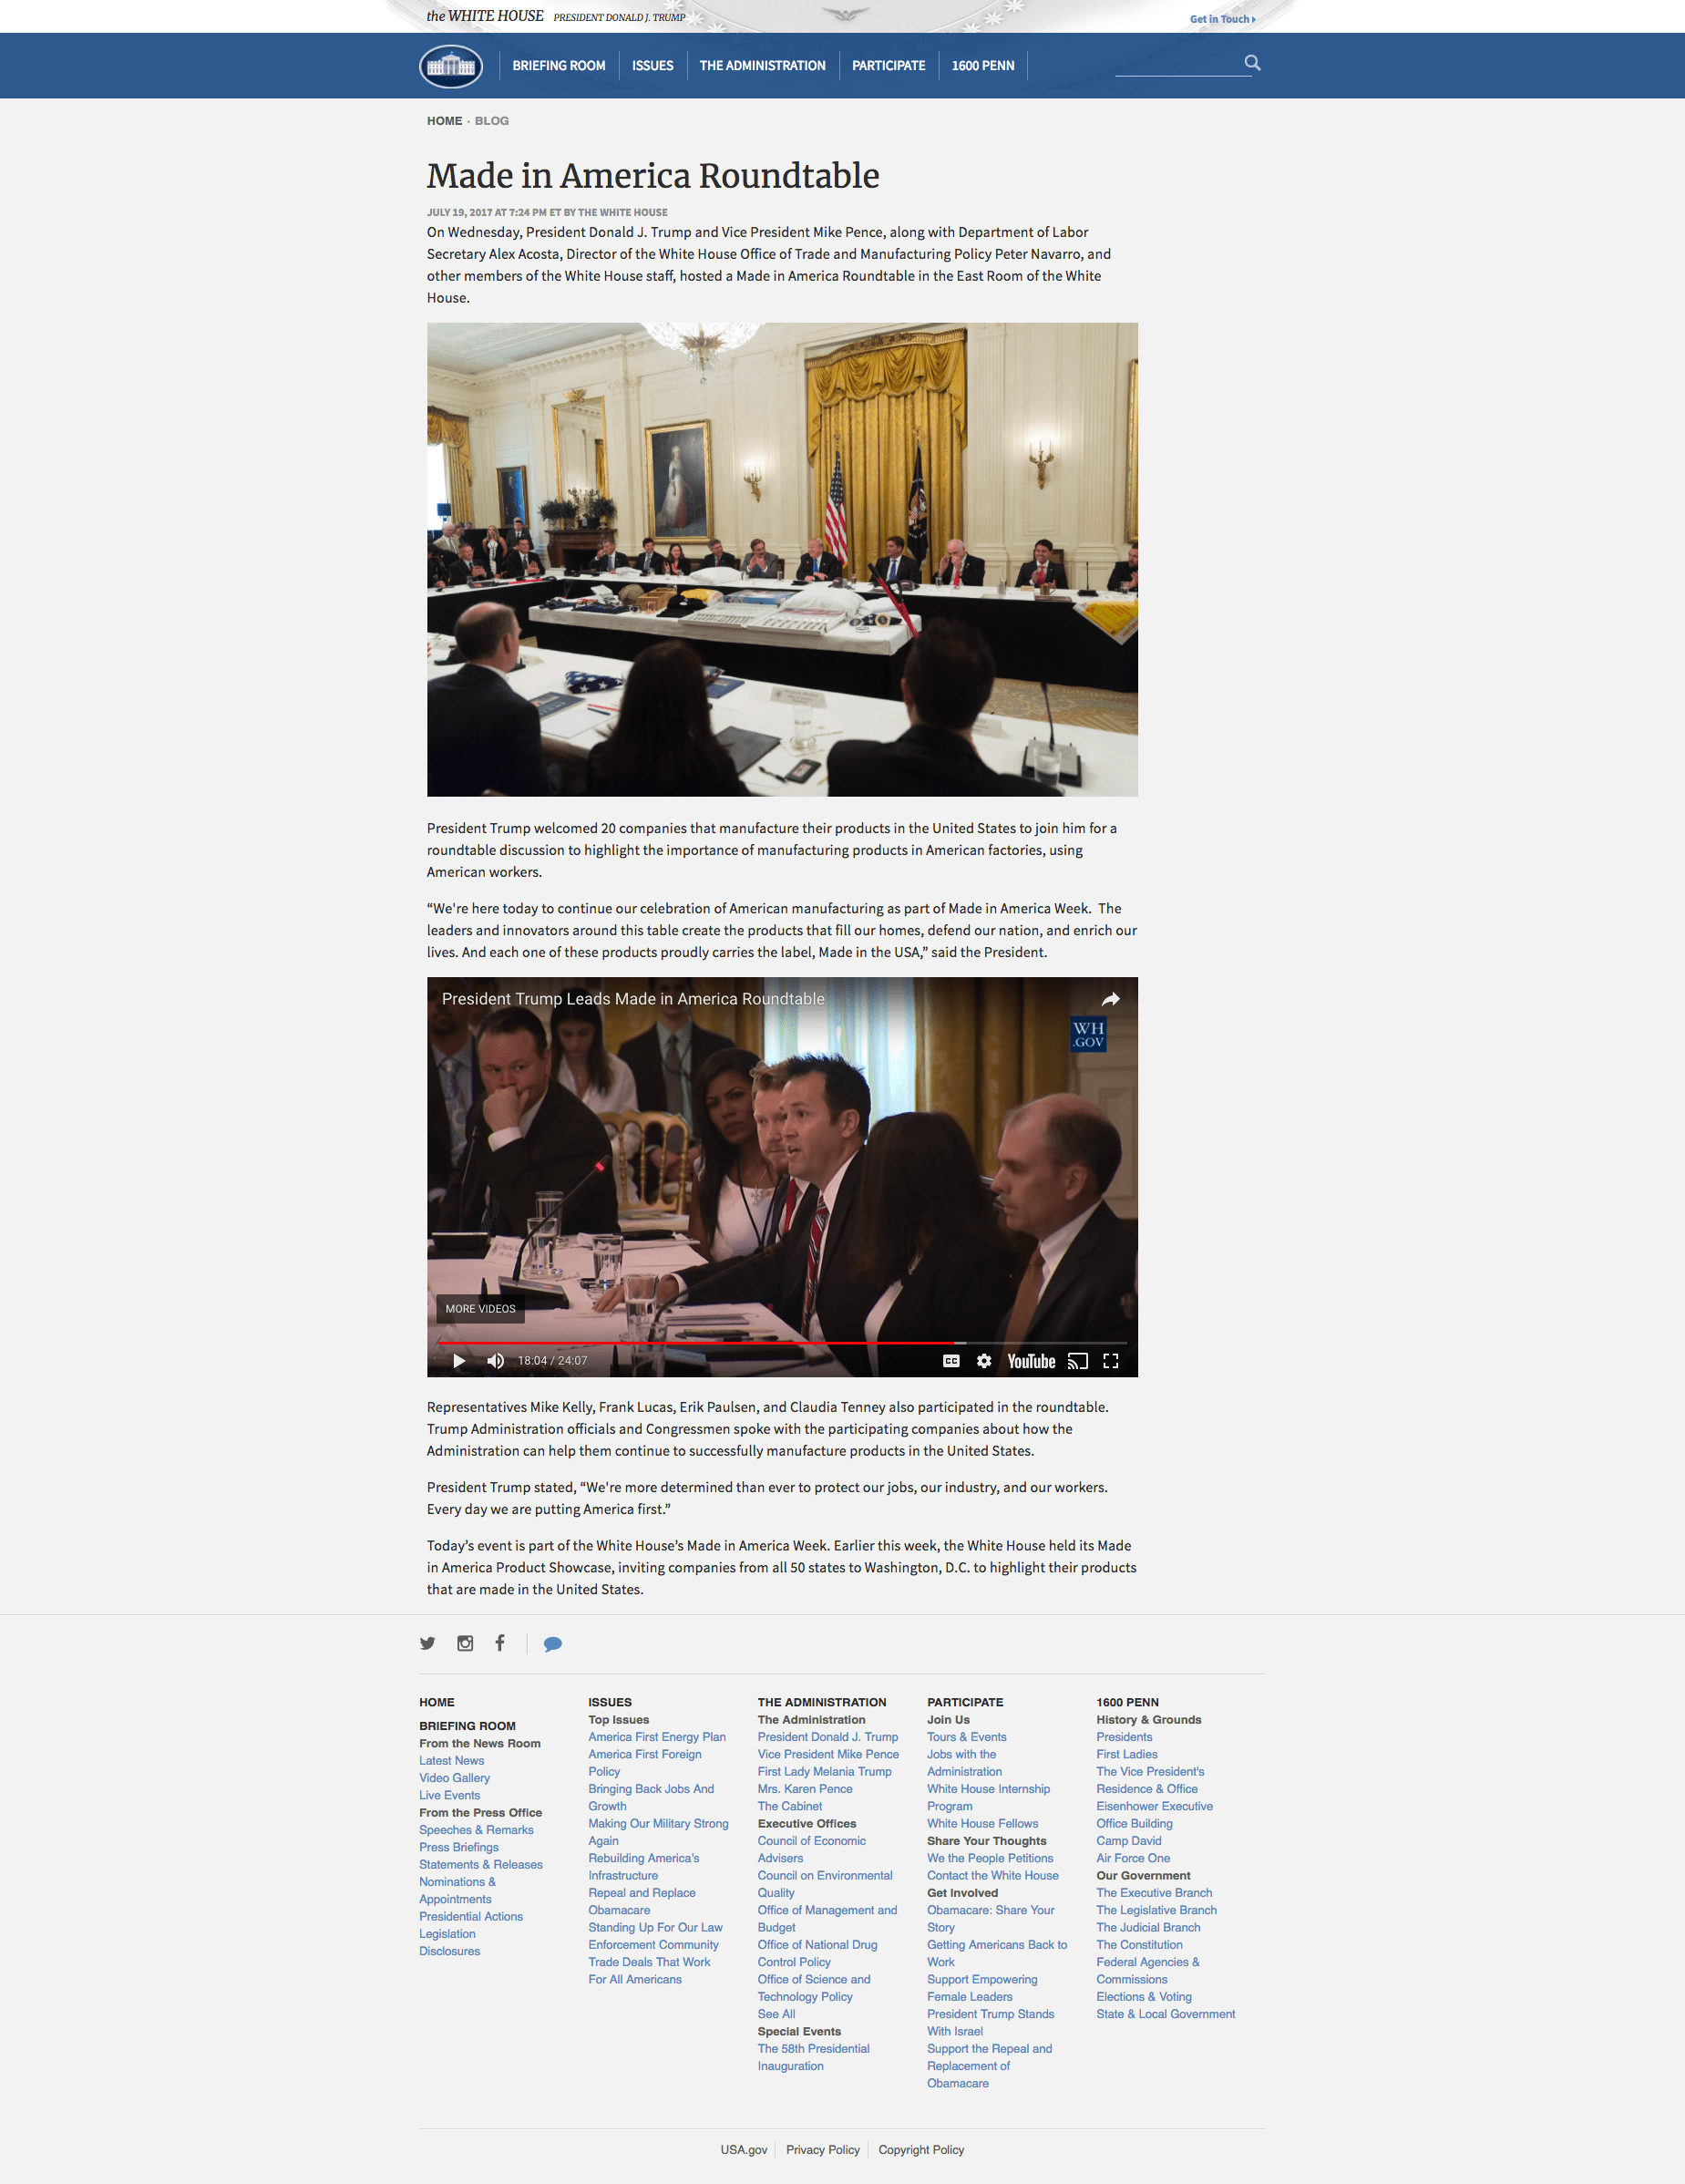 White House Article on Made in America Roundtable with Margarita Mendoza and Kurt Uhlir v2